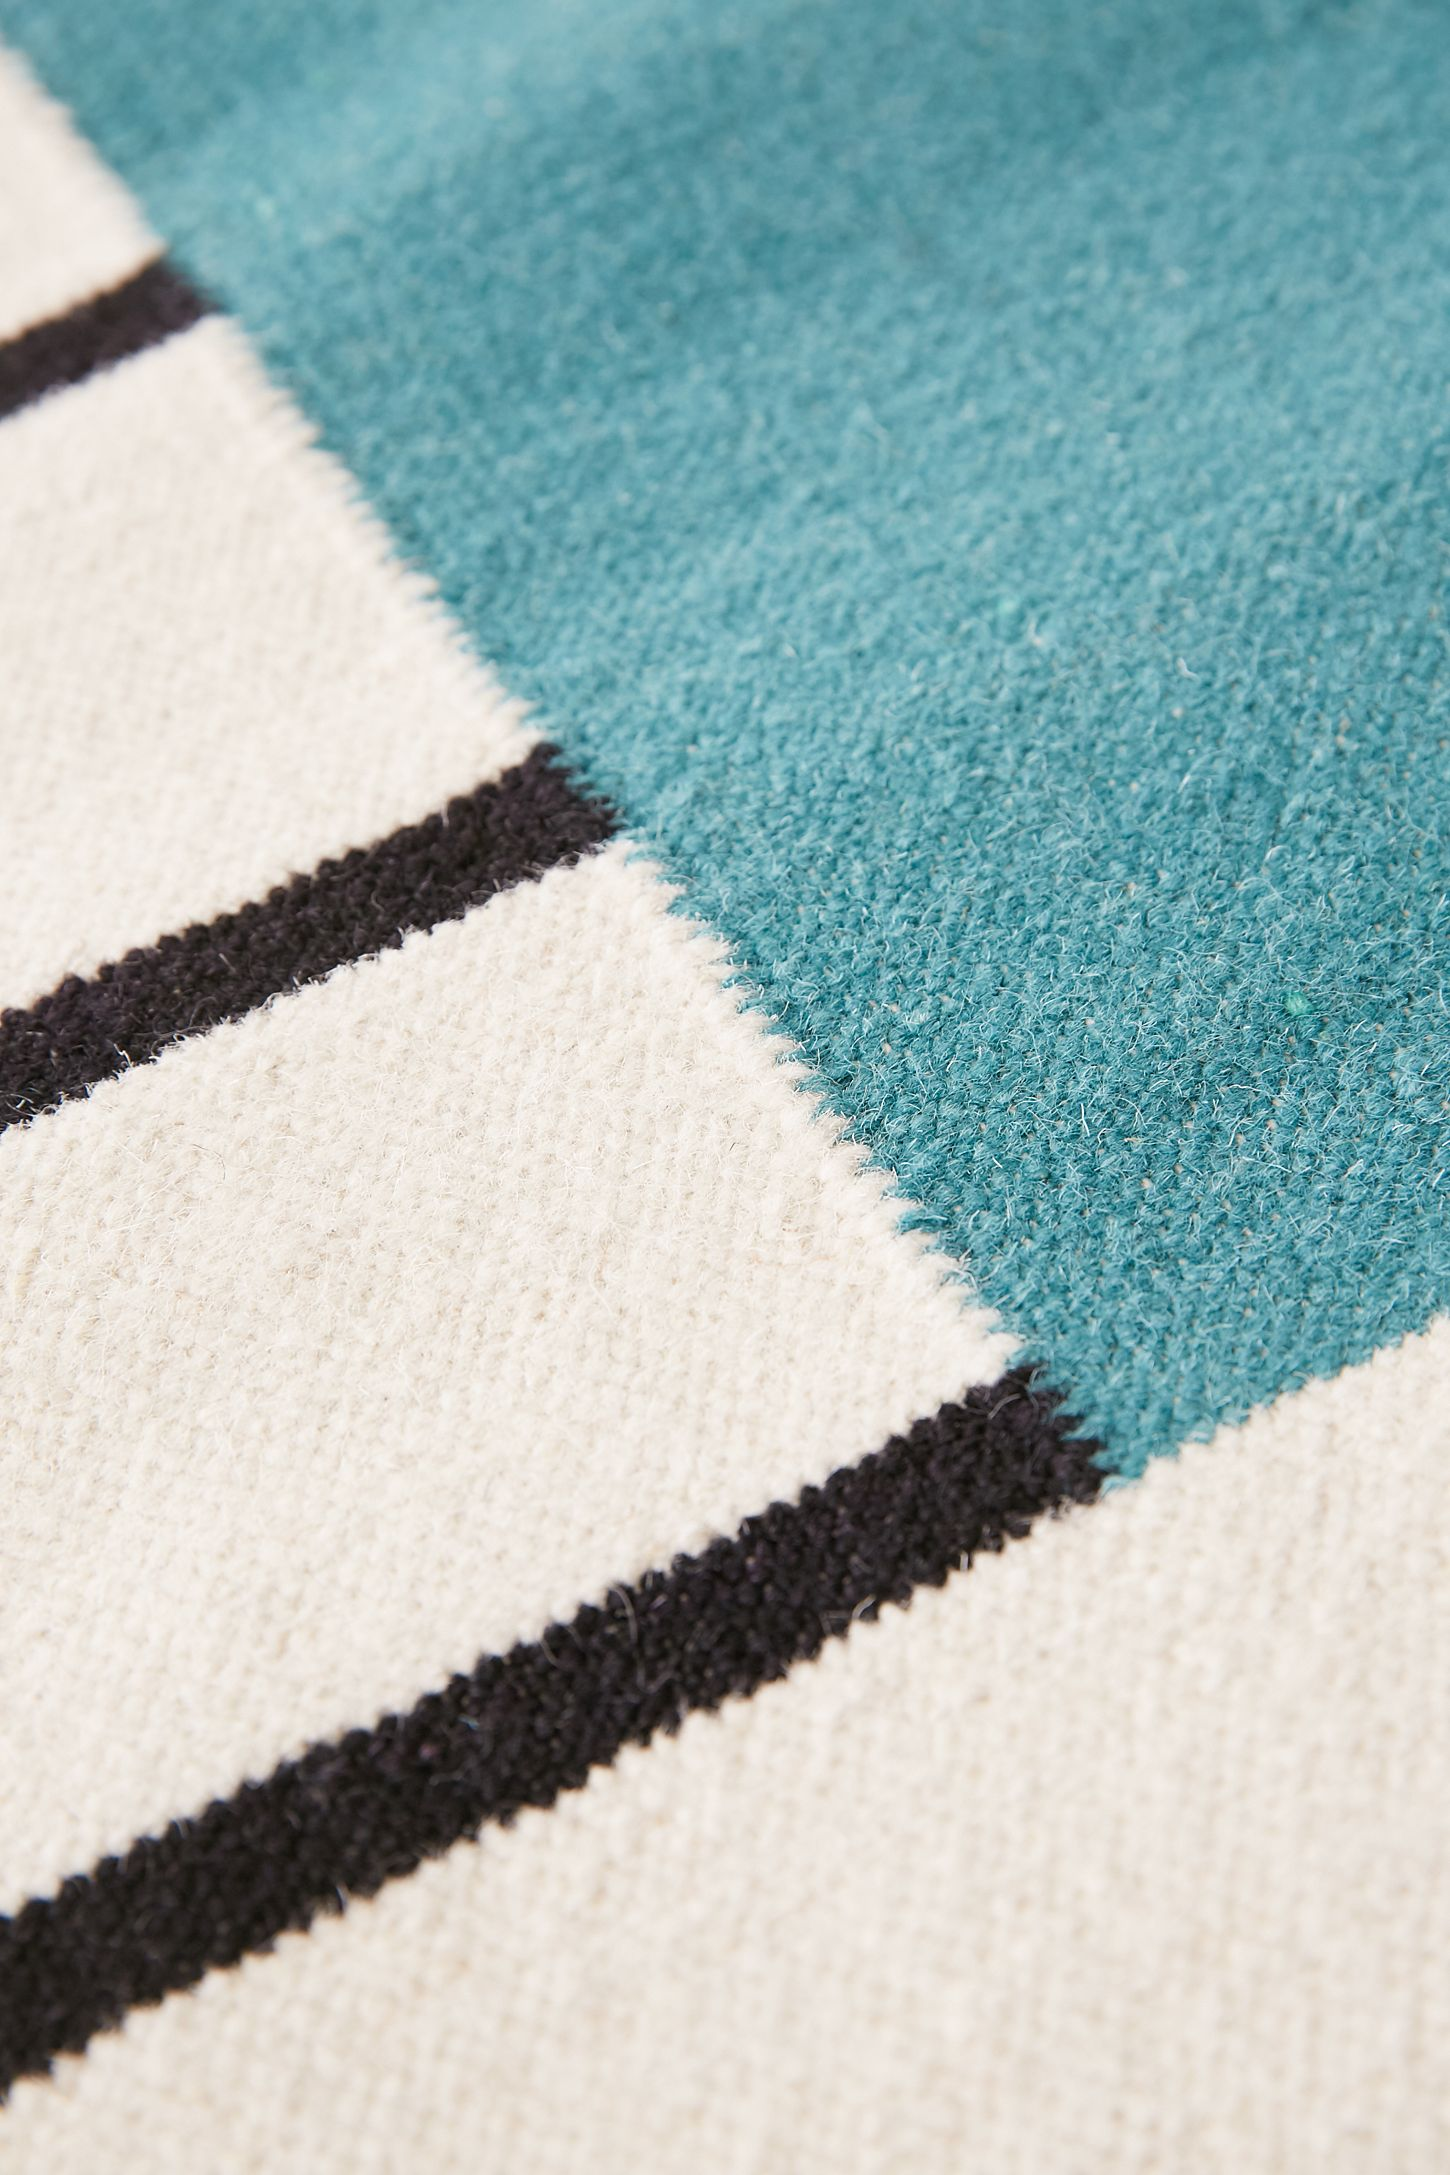 bd rugs flat in area rug dark dblgry by collection products dhurrie gray blue and gobi fine weave